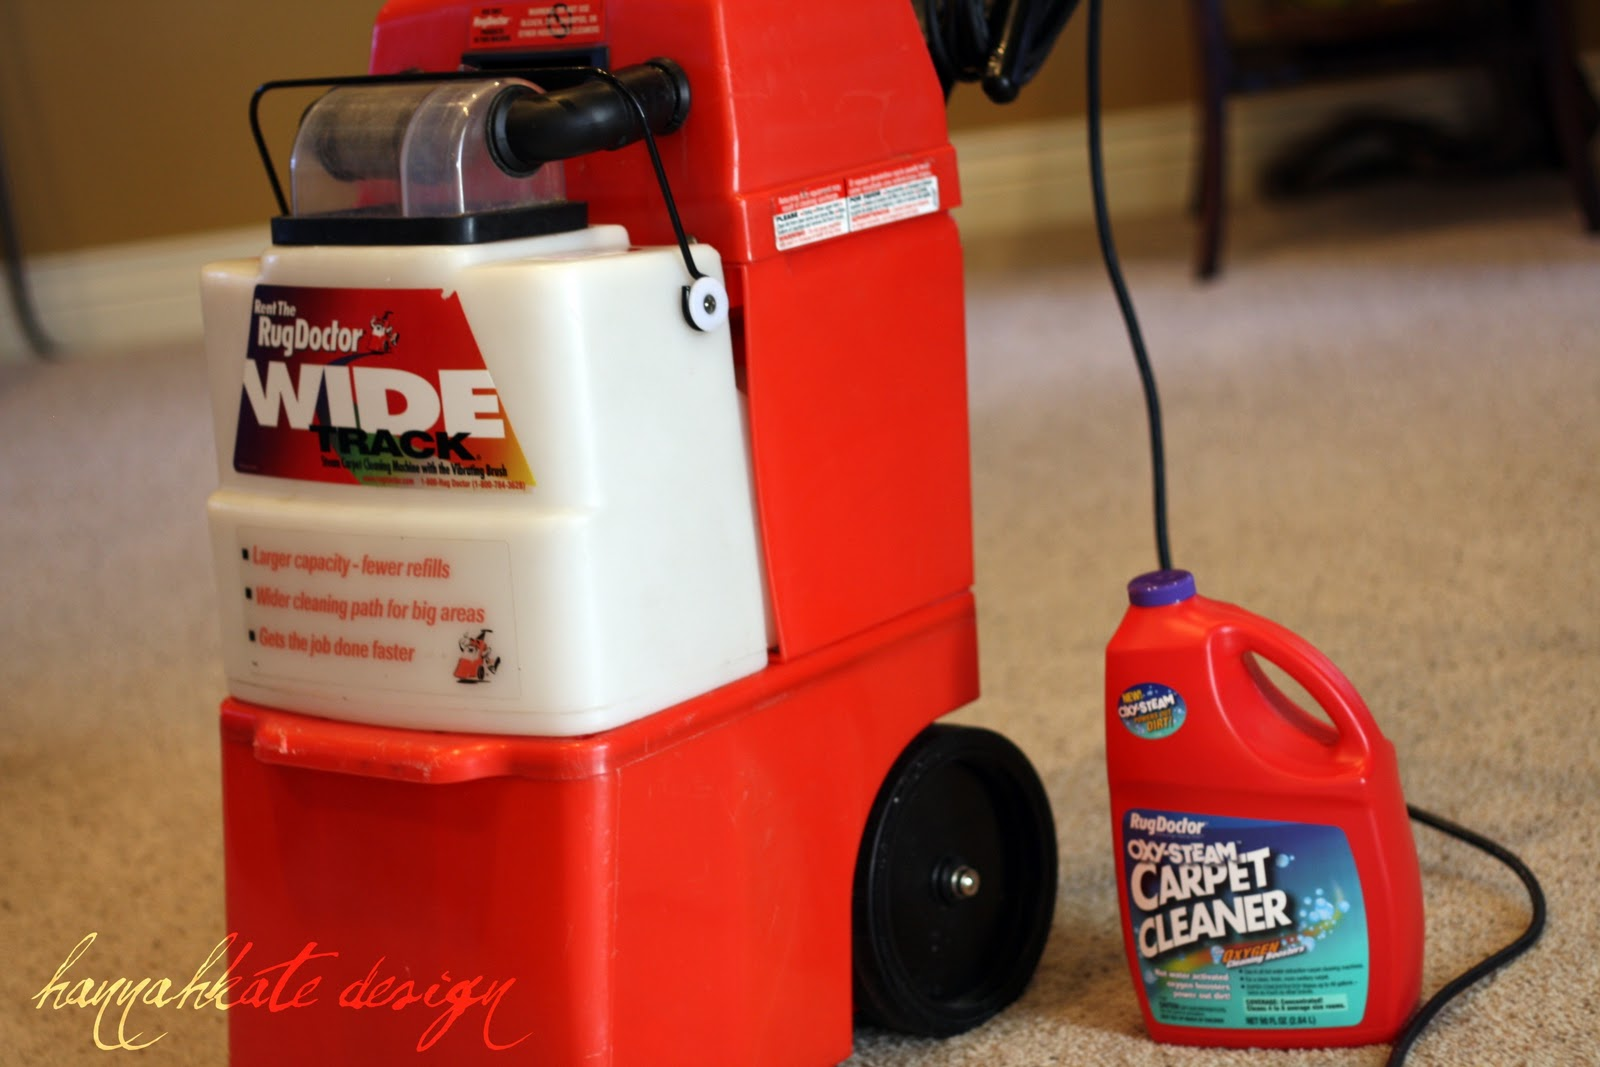 How Much To Hire A Rug Doctor Carpet Cleaner From Homebase